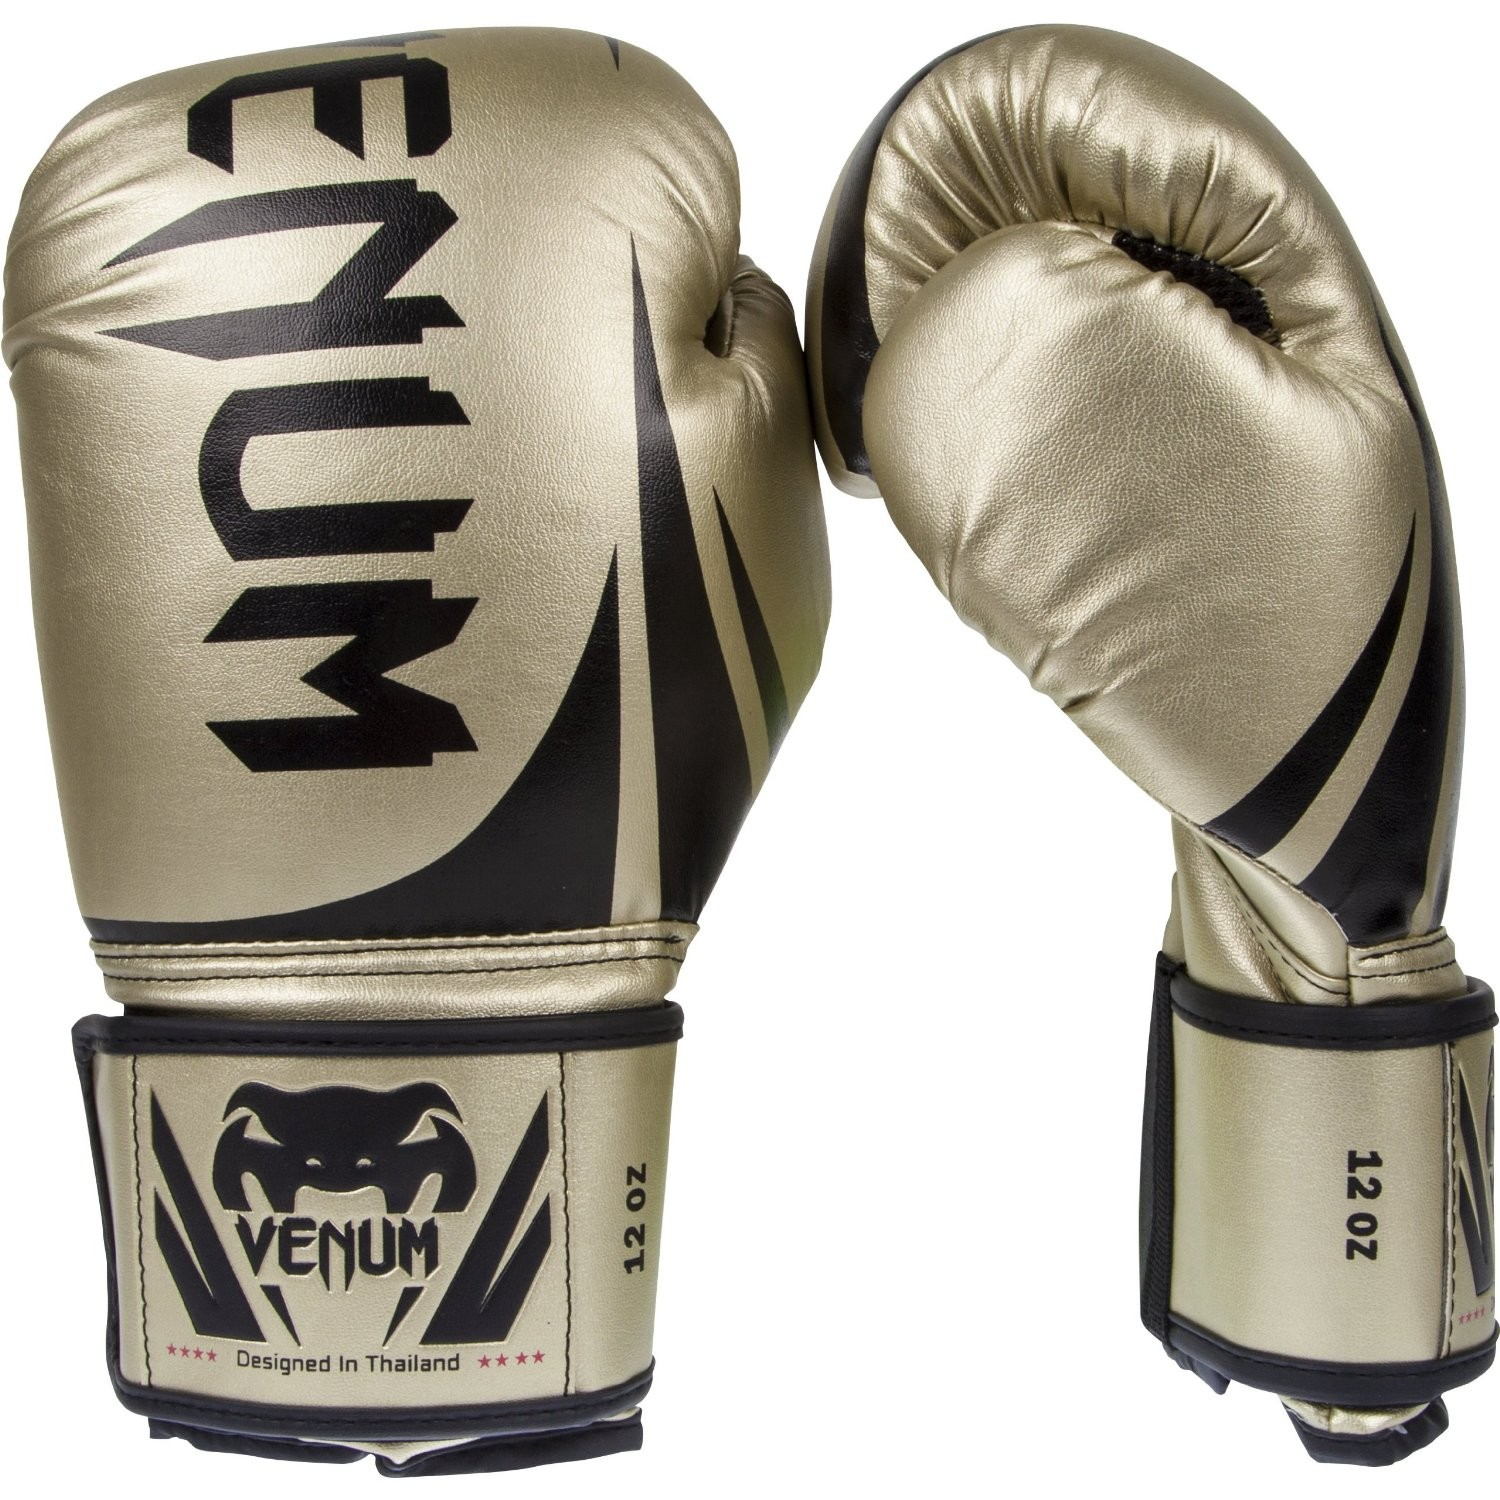 Leather work gloves ebay - Venum Challenger 2 0 Boxing Gloves Gold Black